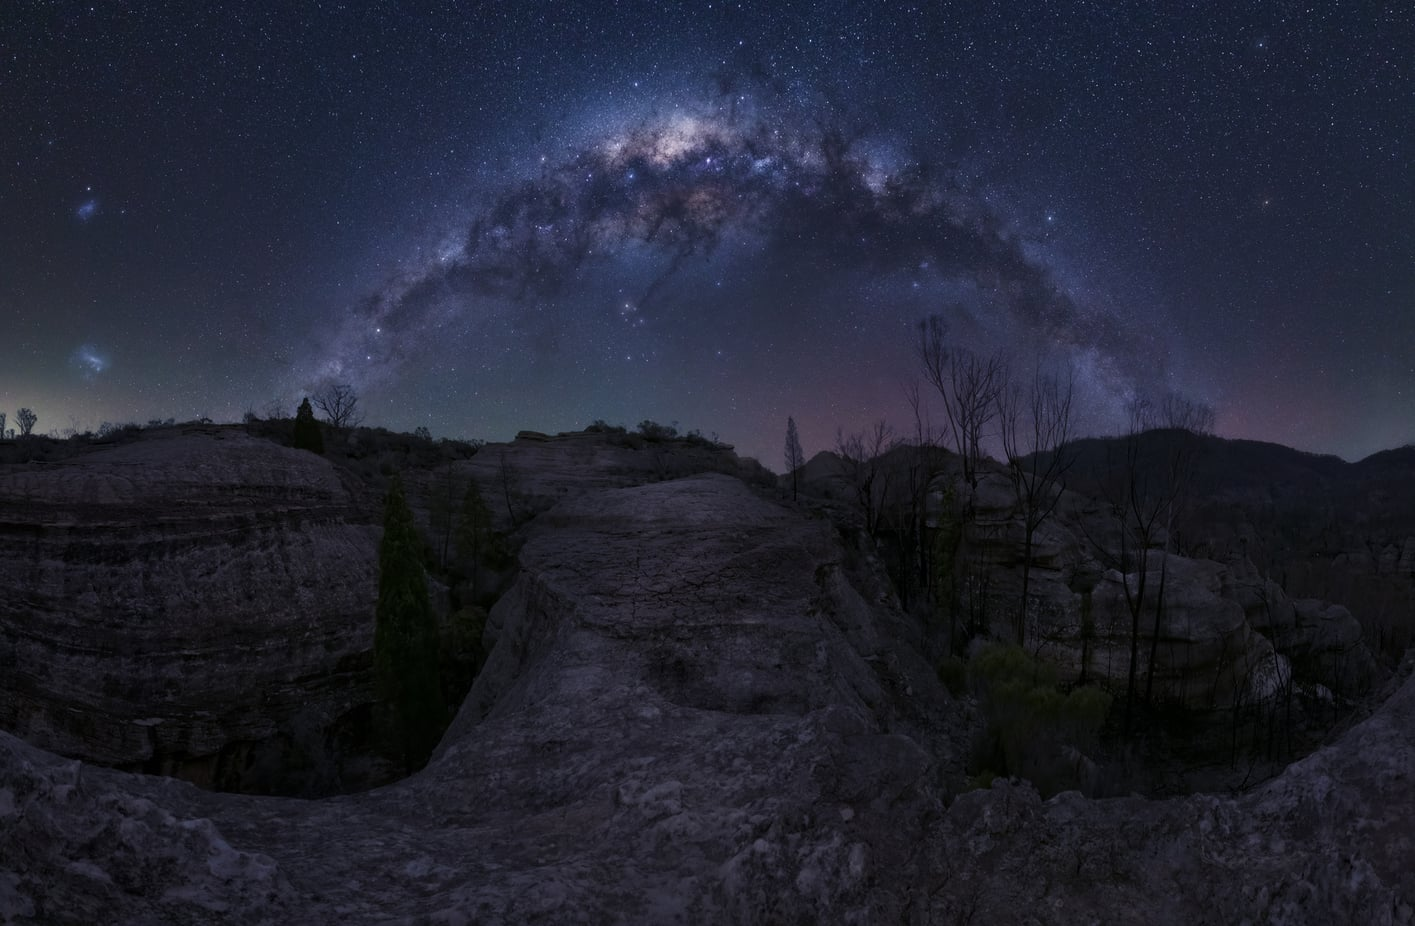 Best places to see the Milky Way in Australia